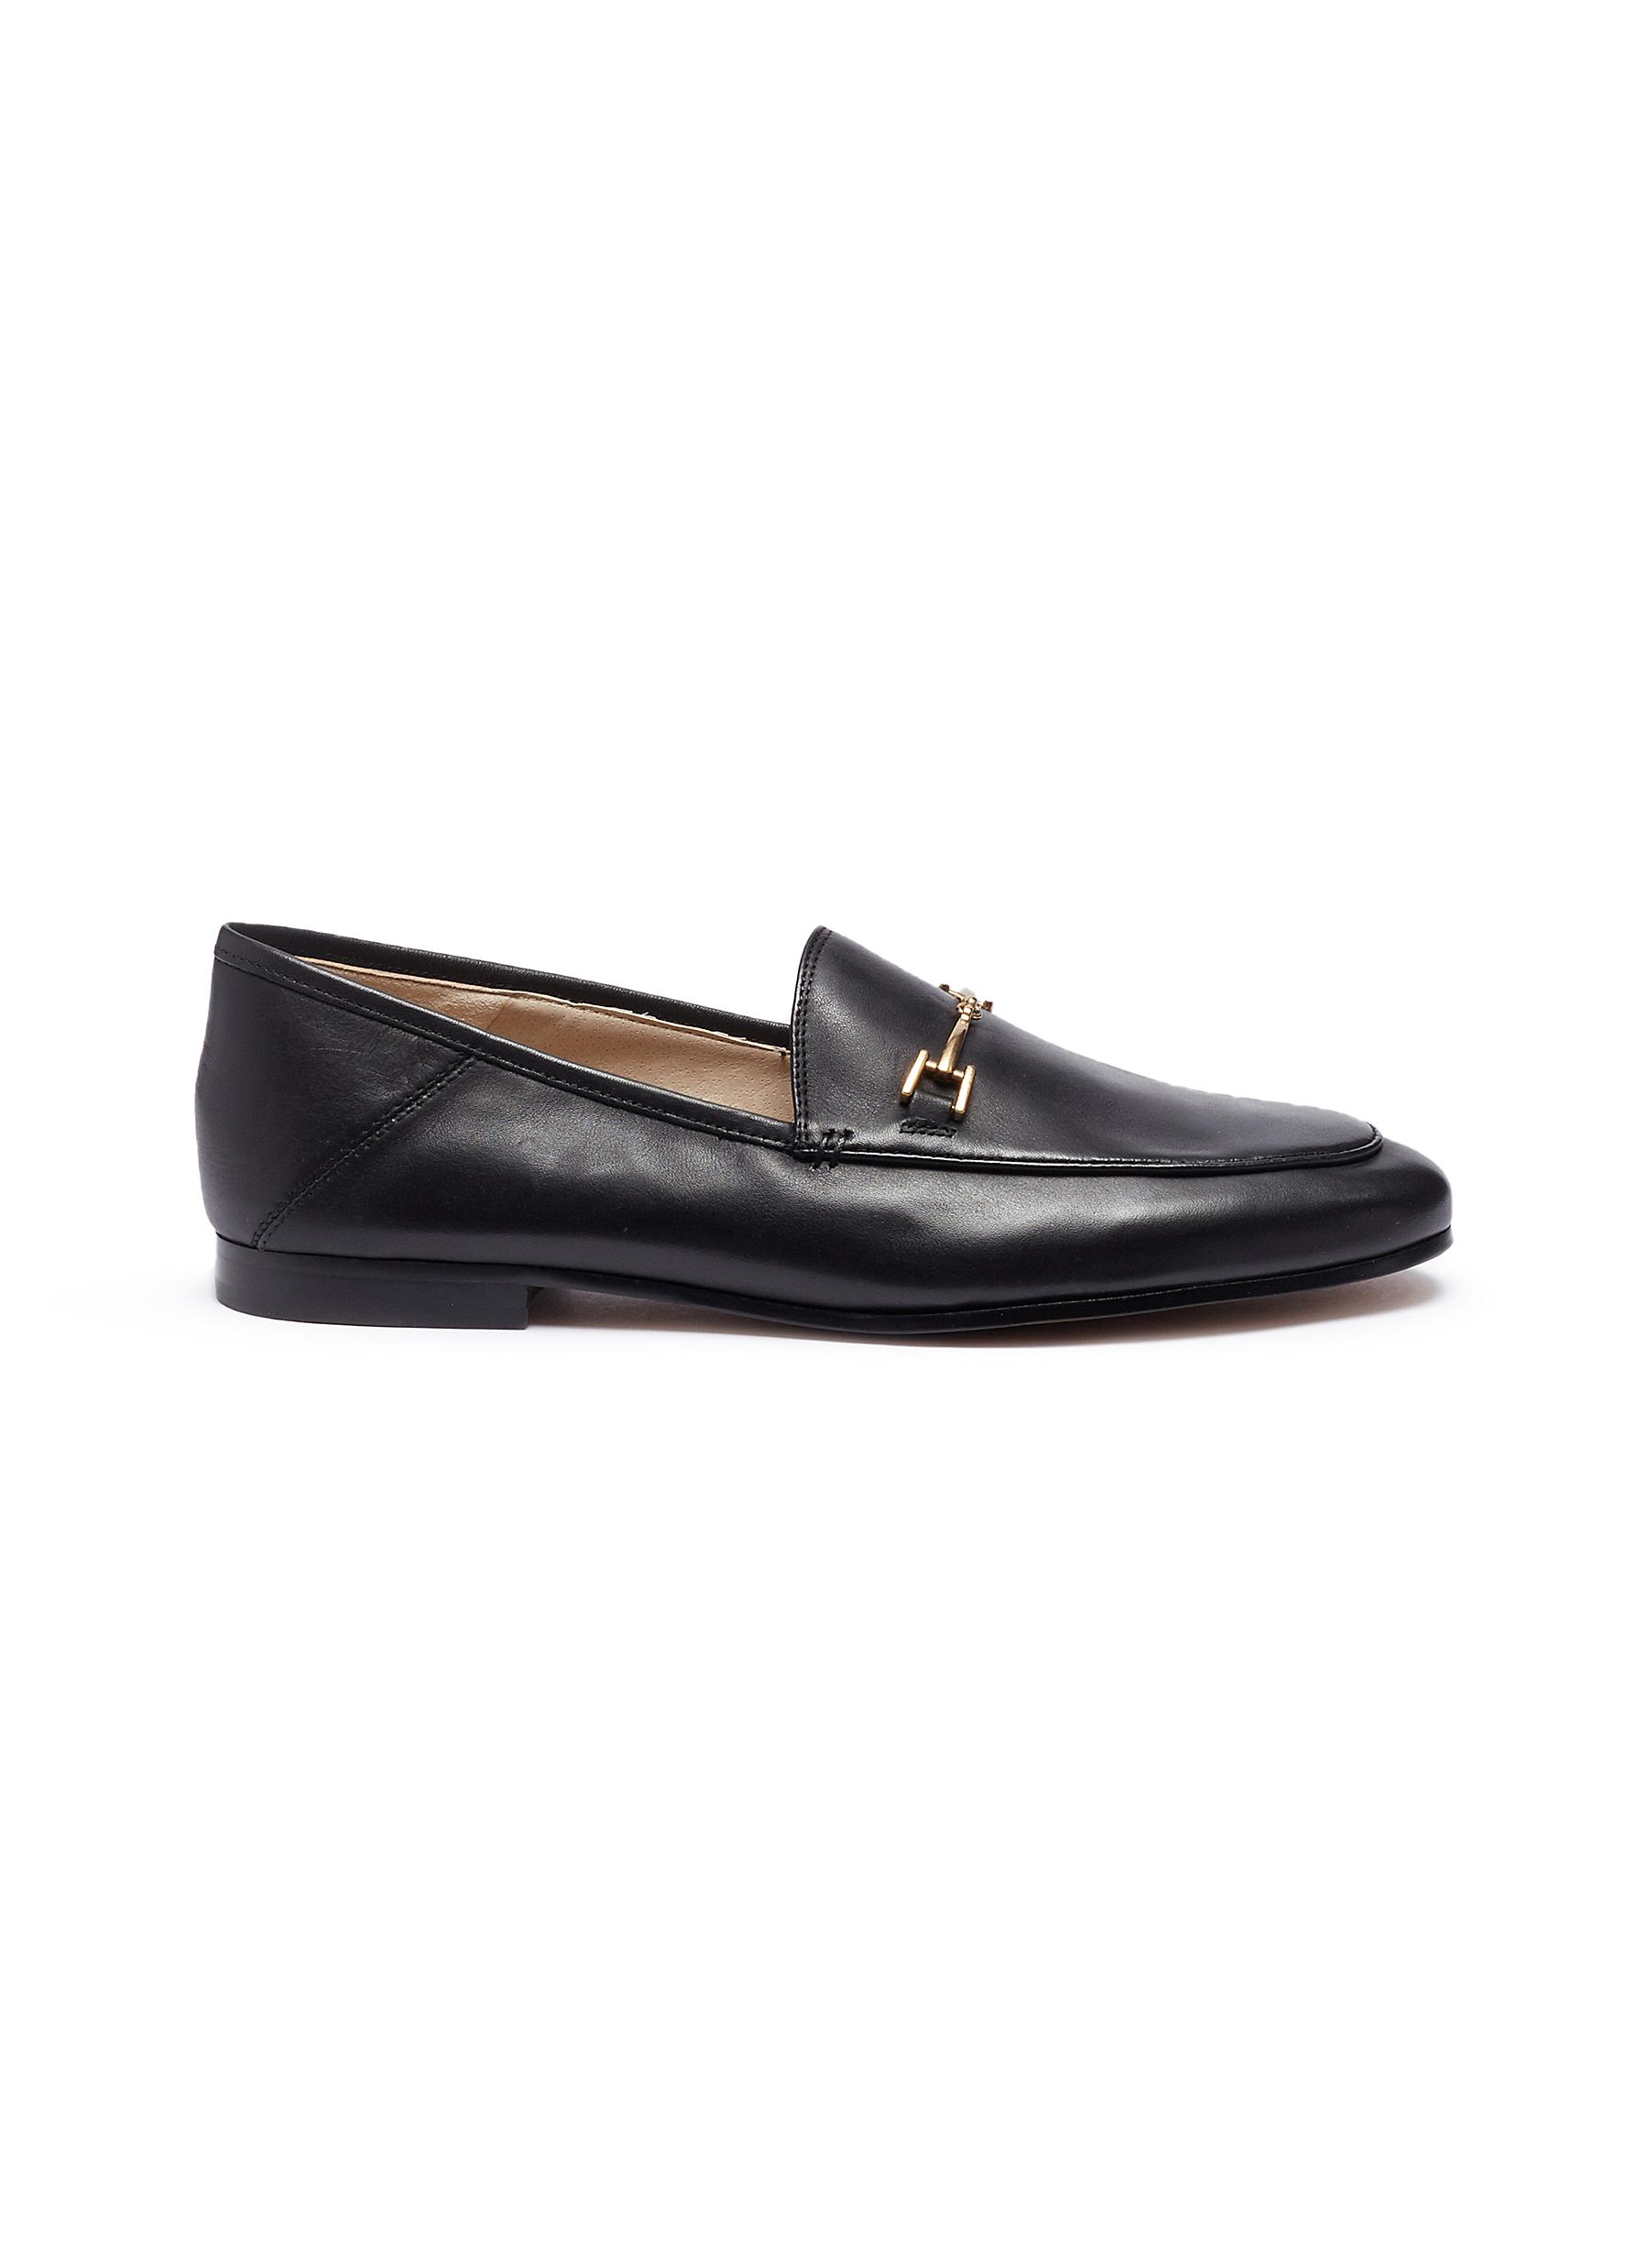 Sam Edelman Flats Loraine horsebit leather step-in loafer